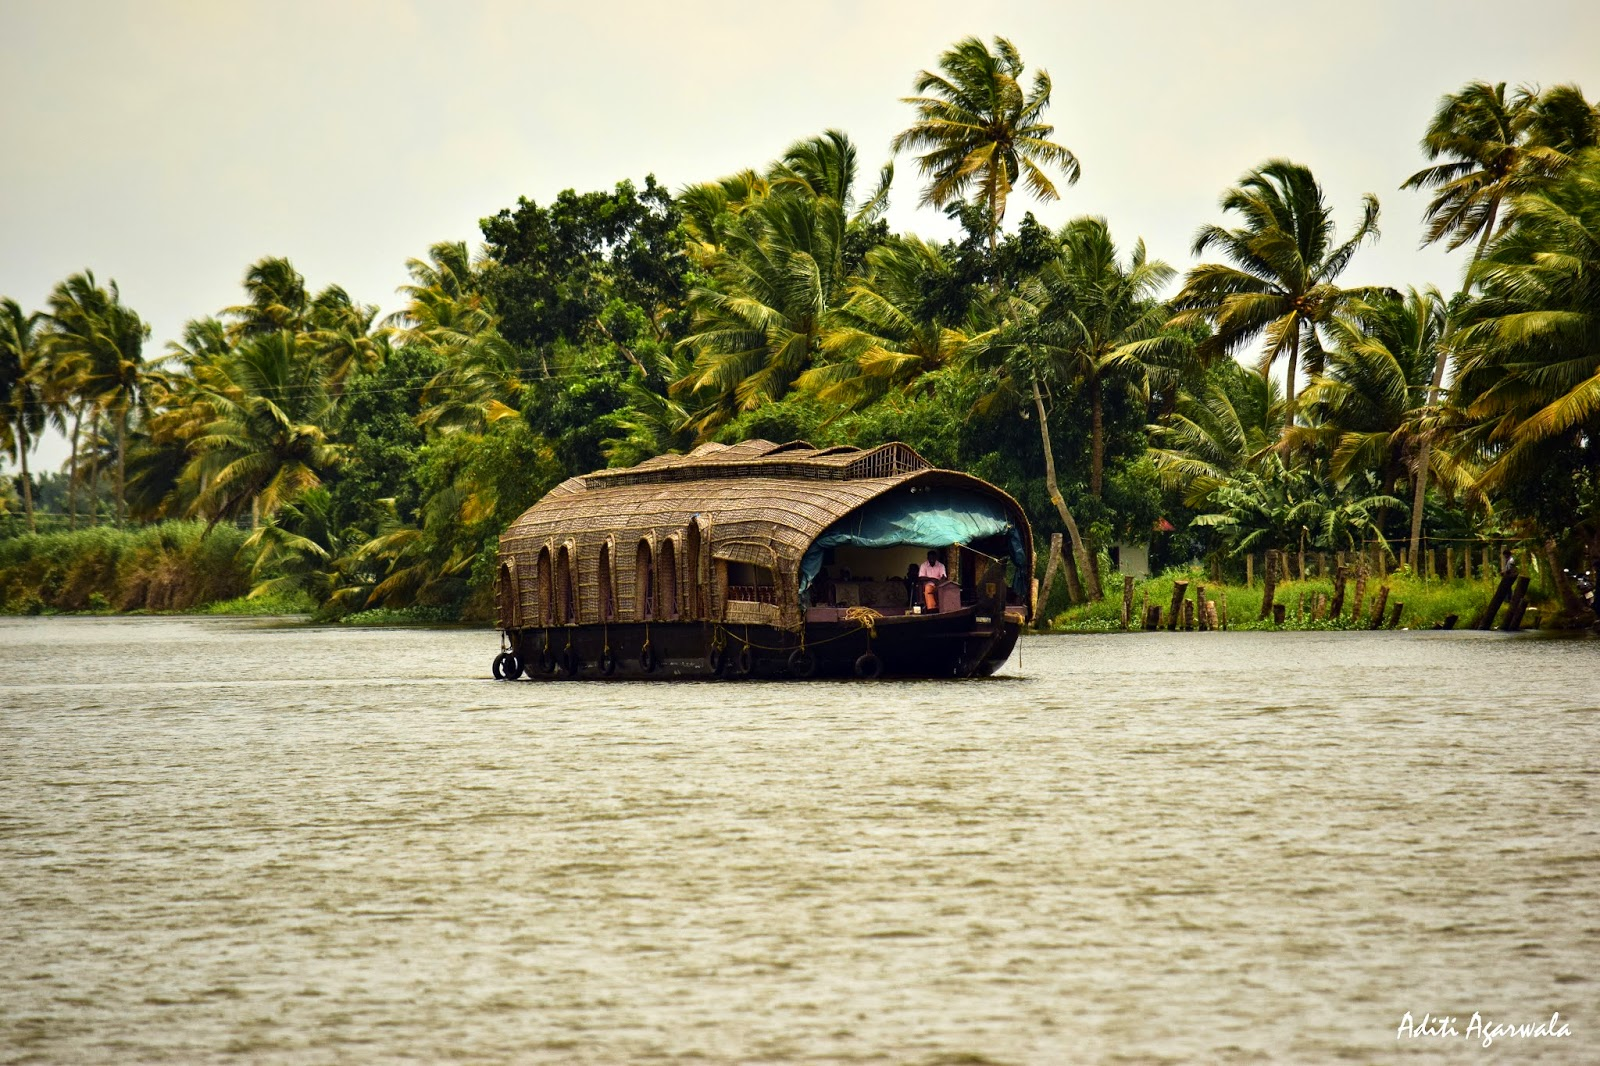 A houseboat sailing on the backwaters of Allepey, Kerala